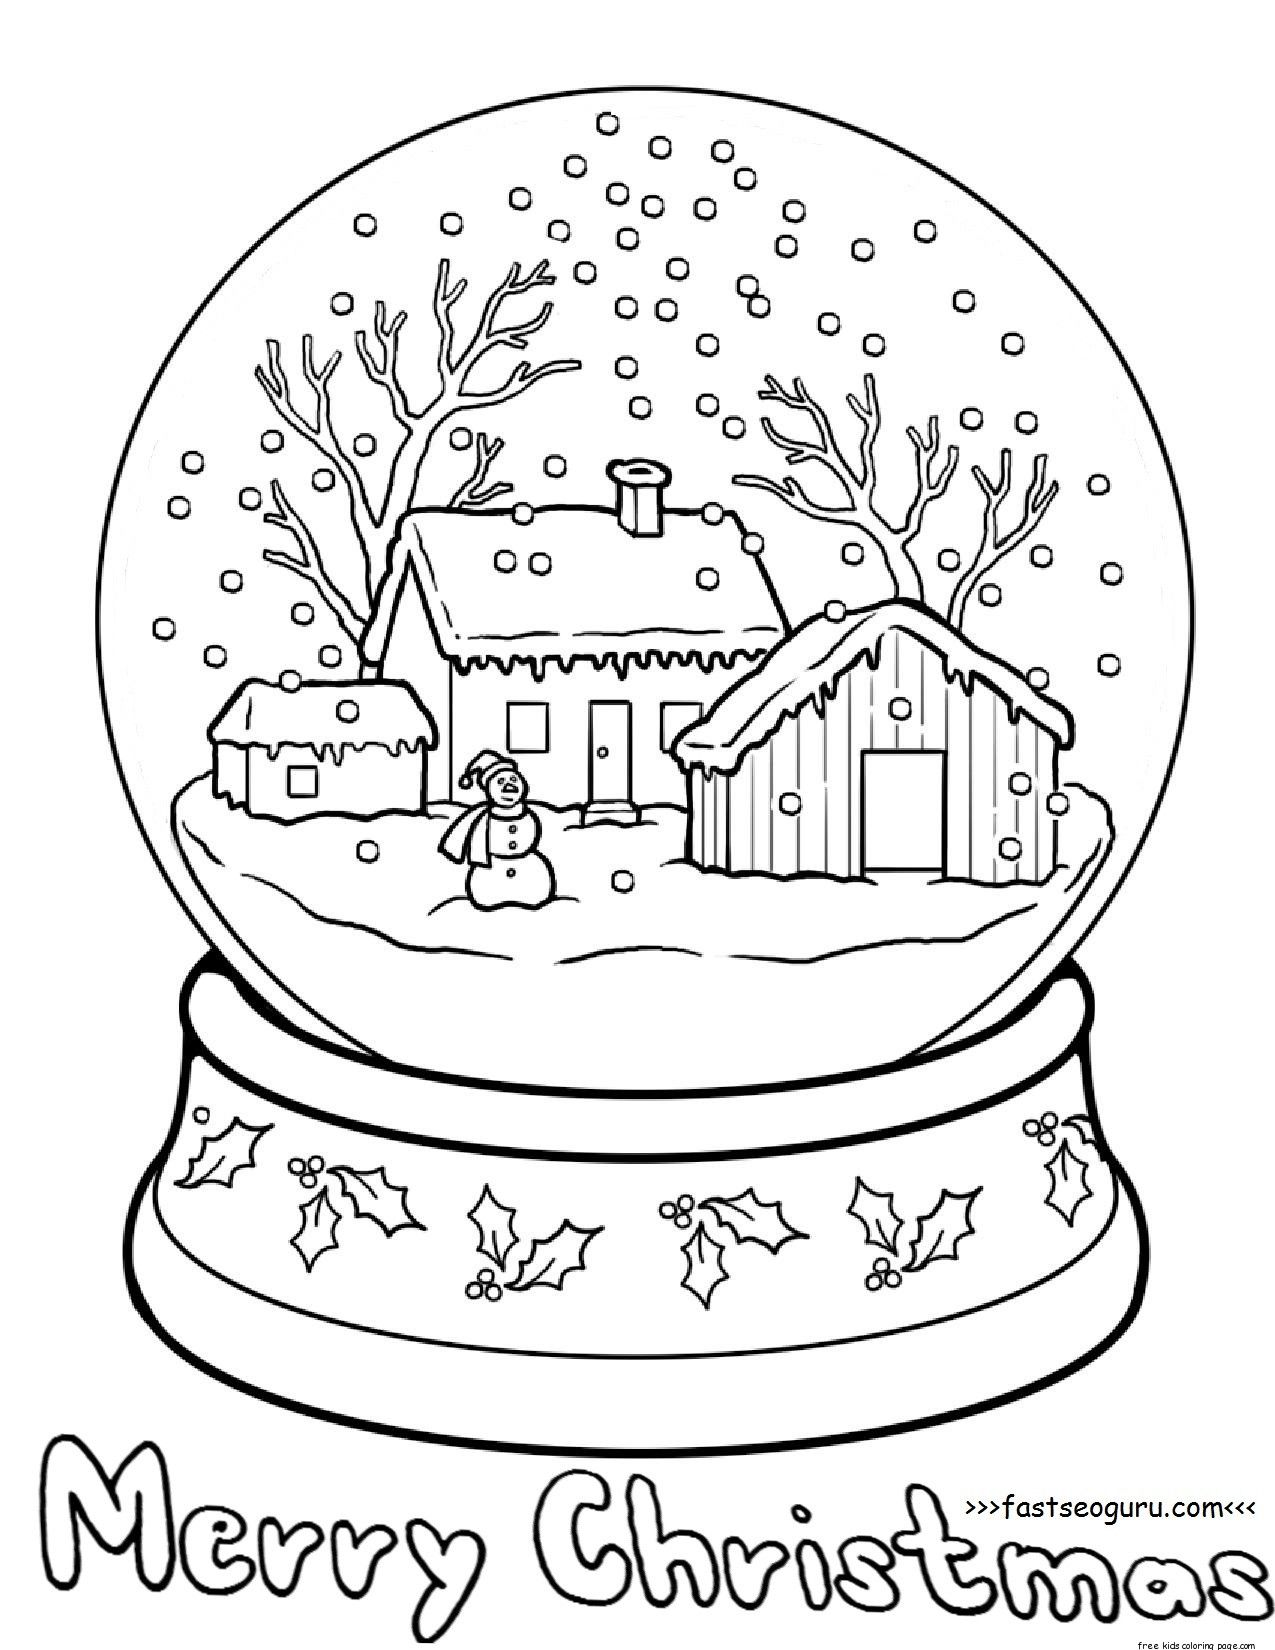 Printble Christmas Snow Globe Coloring Pages For Kids Christmas